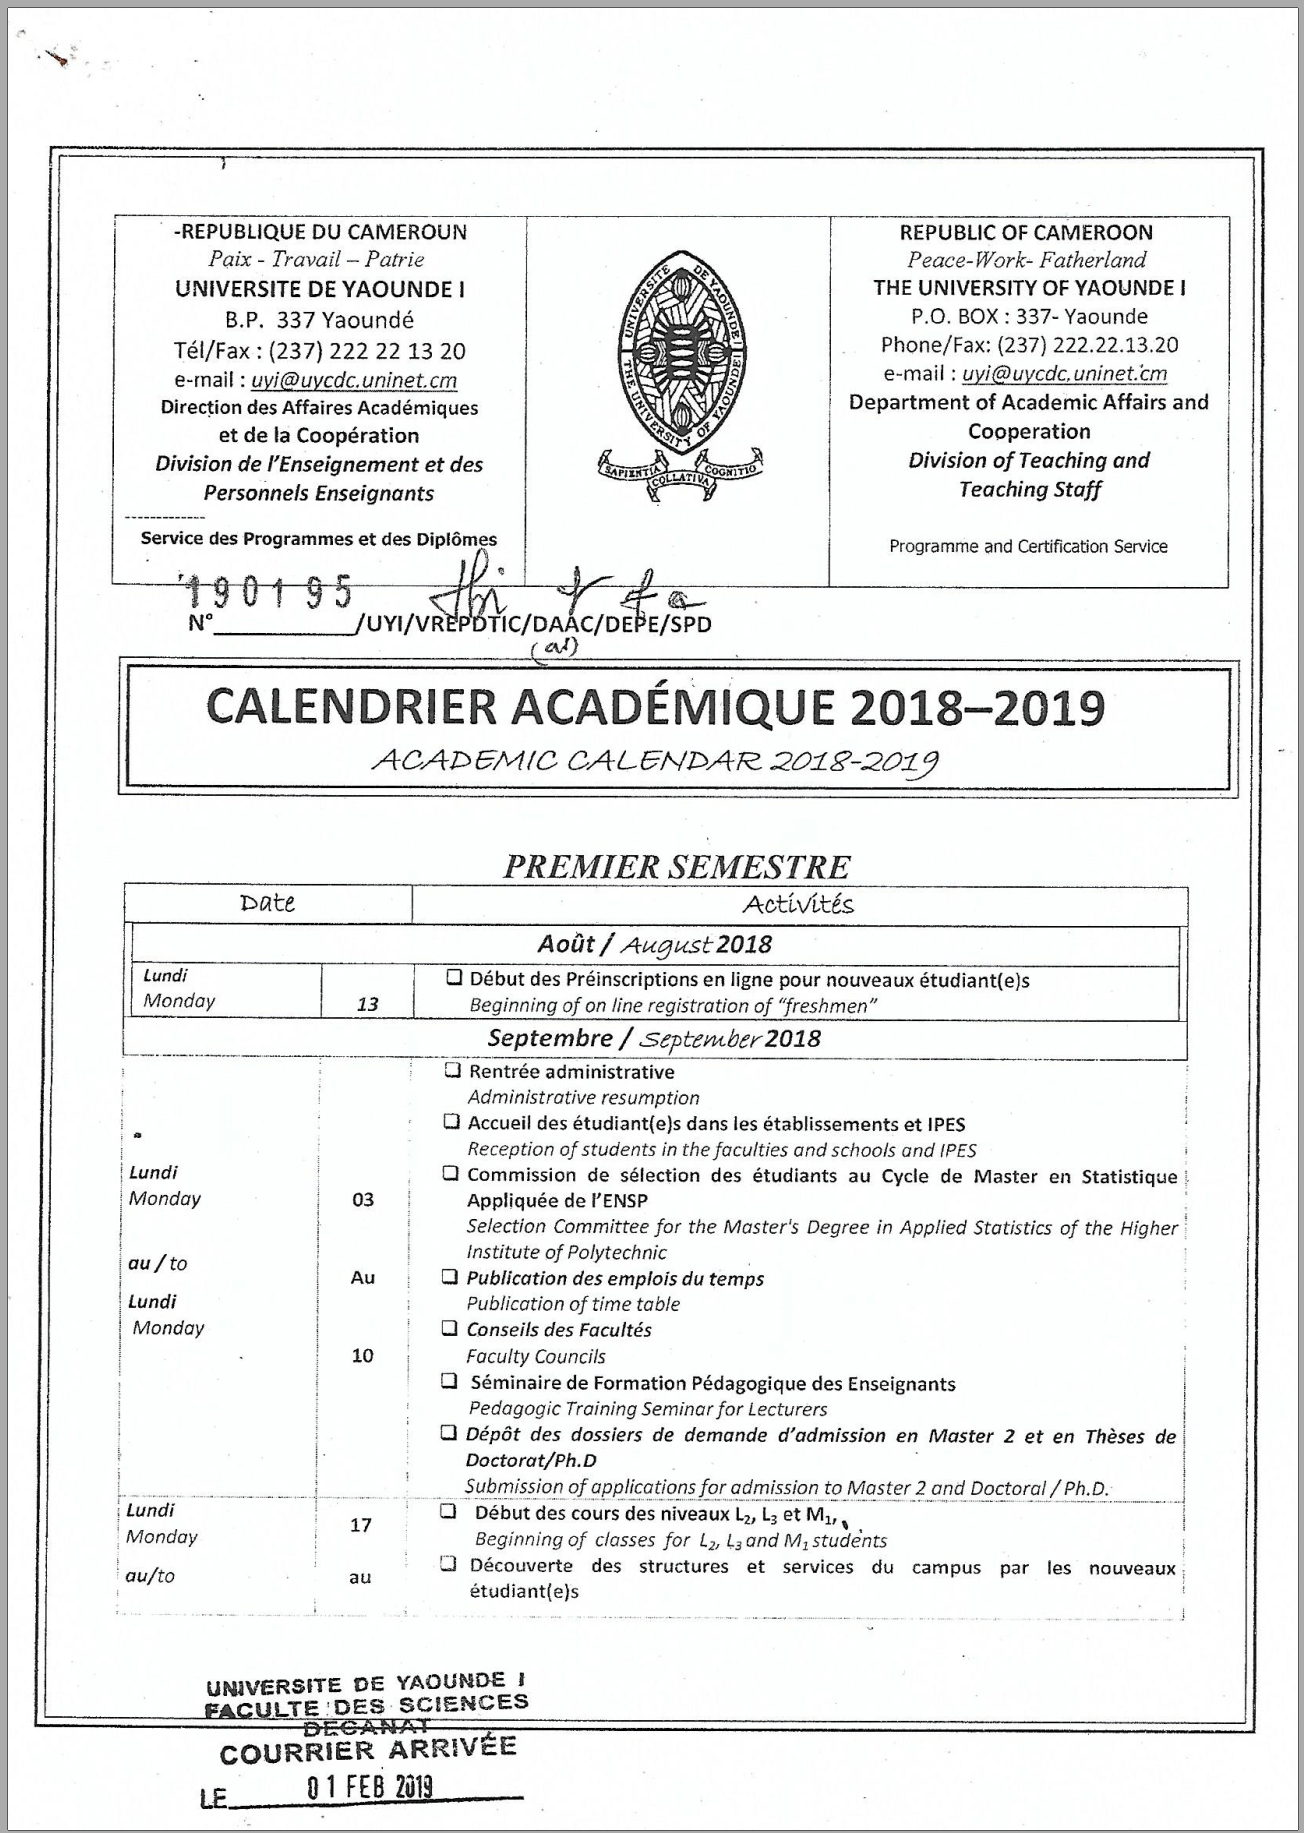 Academic Calendar University of Yaounde I 2018-2019